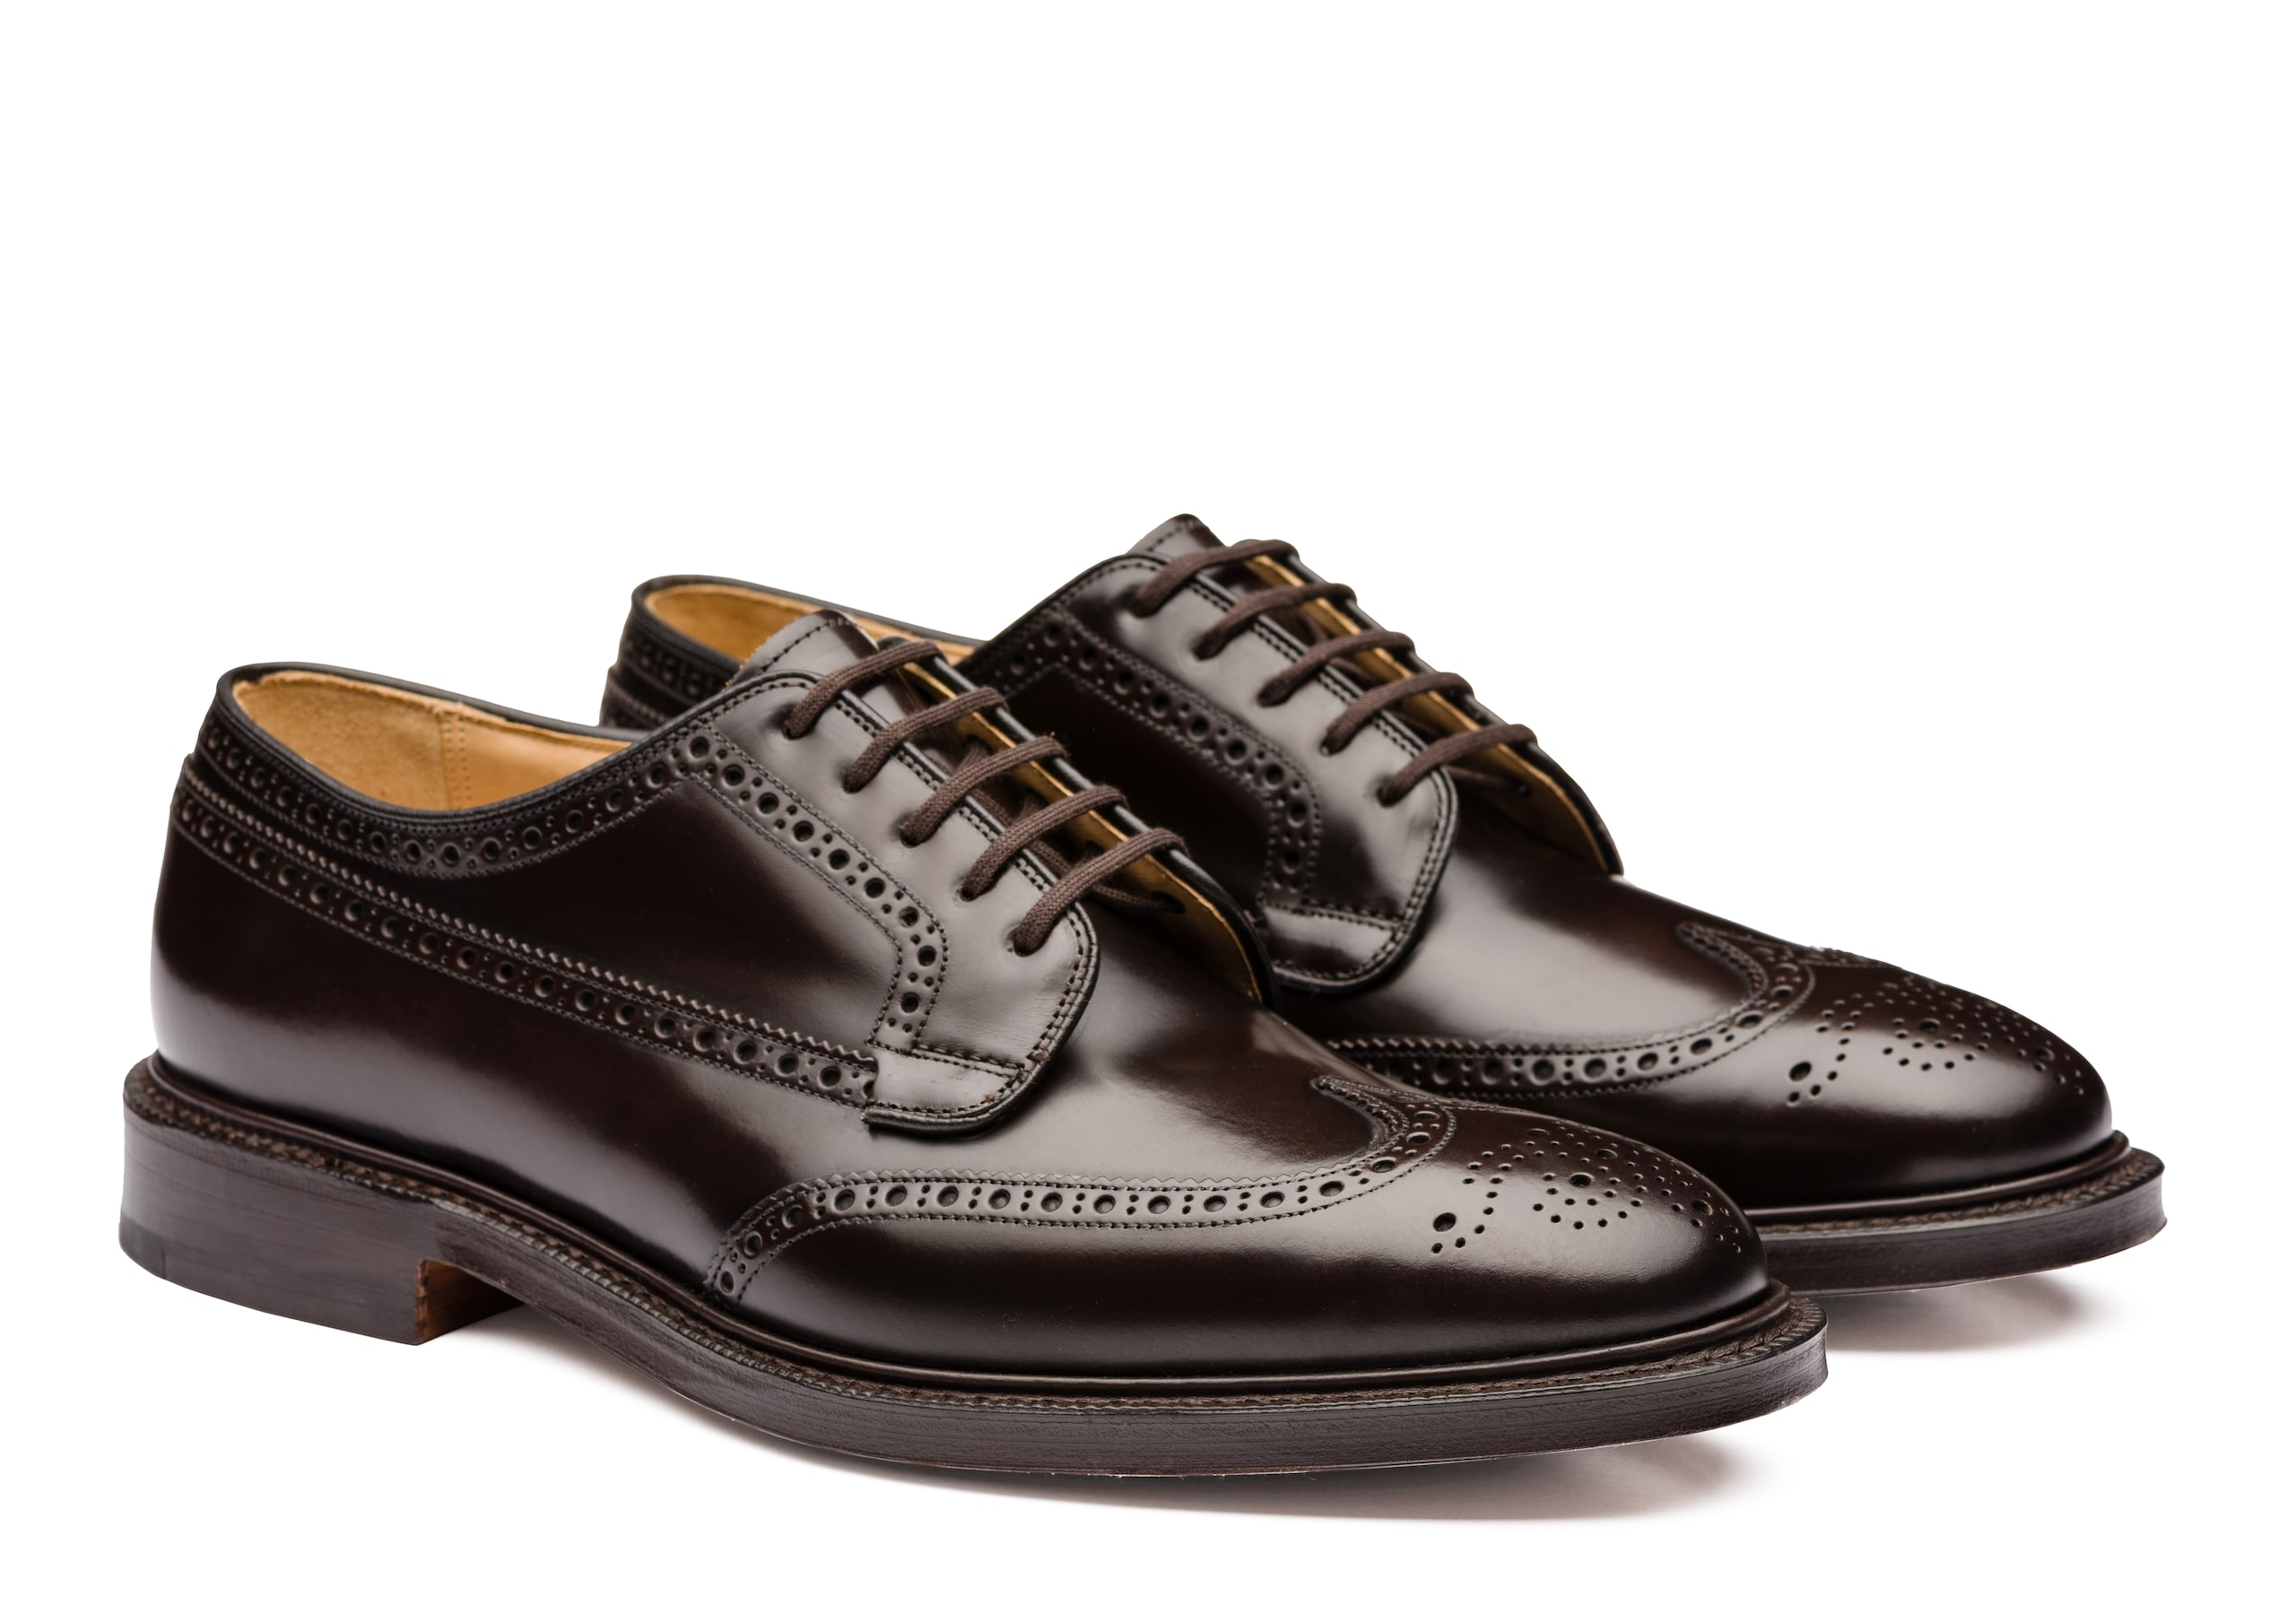 Grafton 173 Church's Polished Binder Derby Brogue Brown